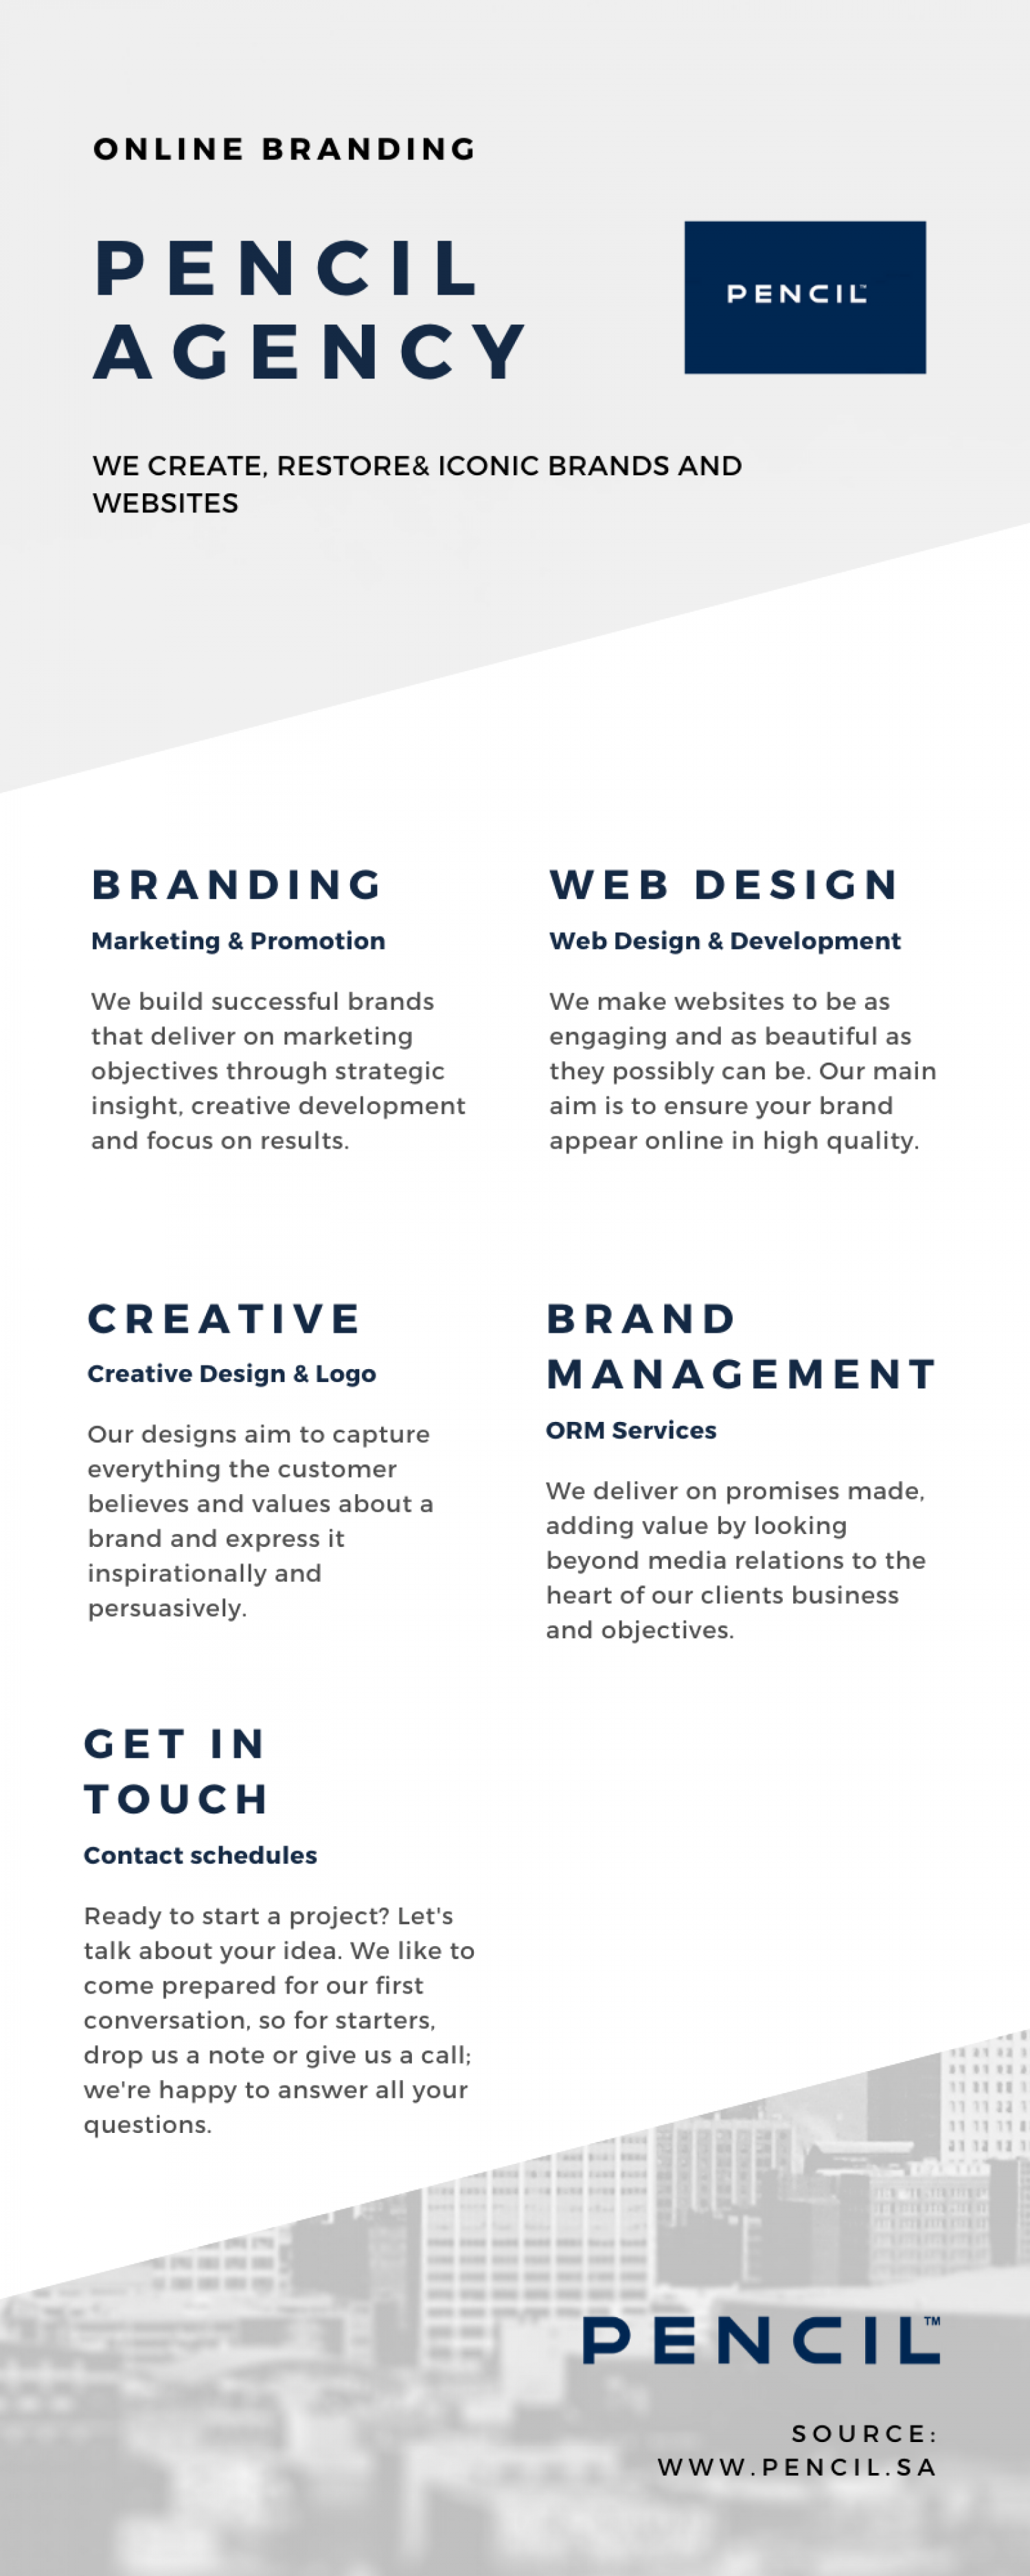 Pencil Website Design and development Agency Infographic